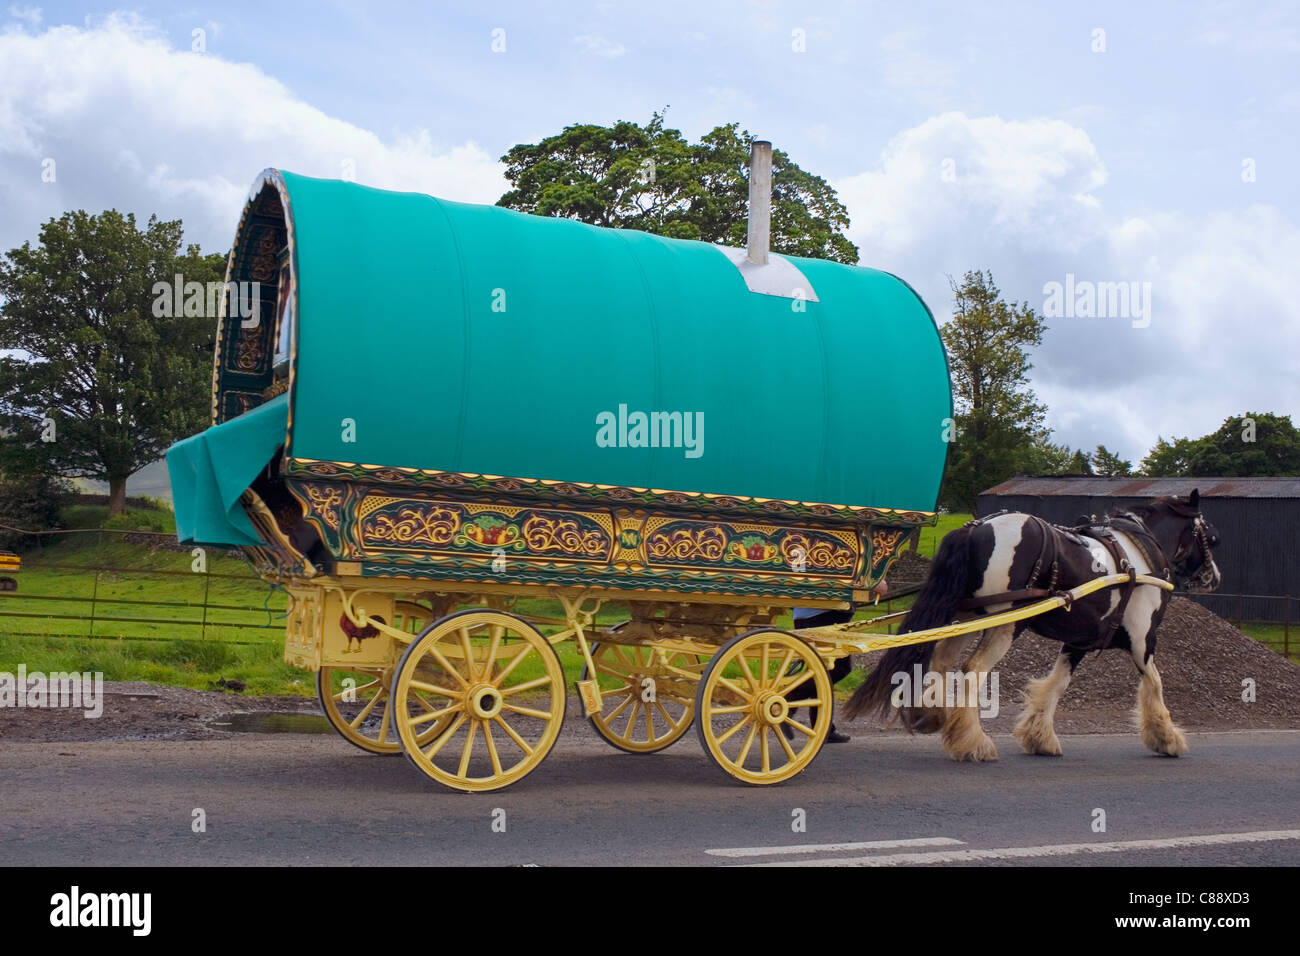 A vardo or traditional horse-drawn wagon used by British Romani people. - Stock Image